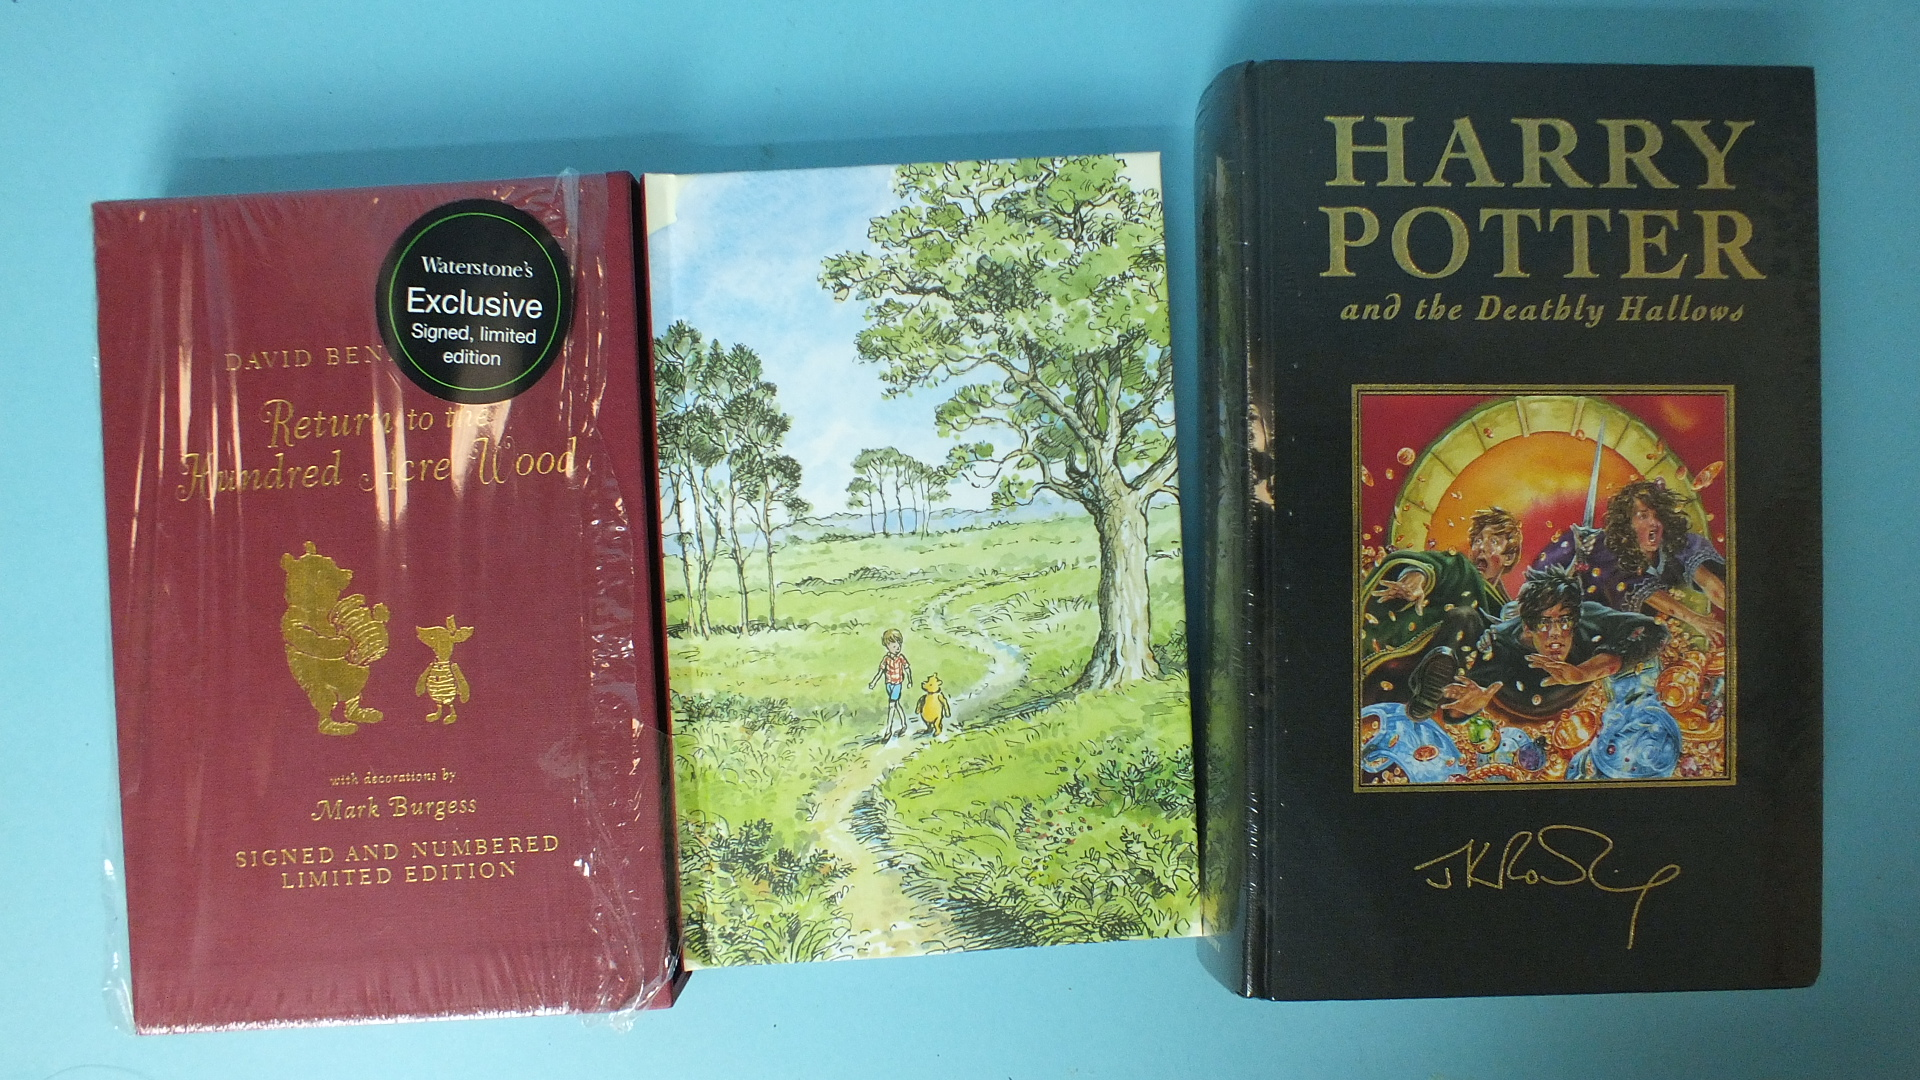 Rowling (J K), Harry Potter and the Deathly Hallows, 1st edn, in unopened plastic cover; pic cl